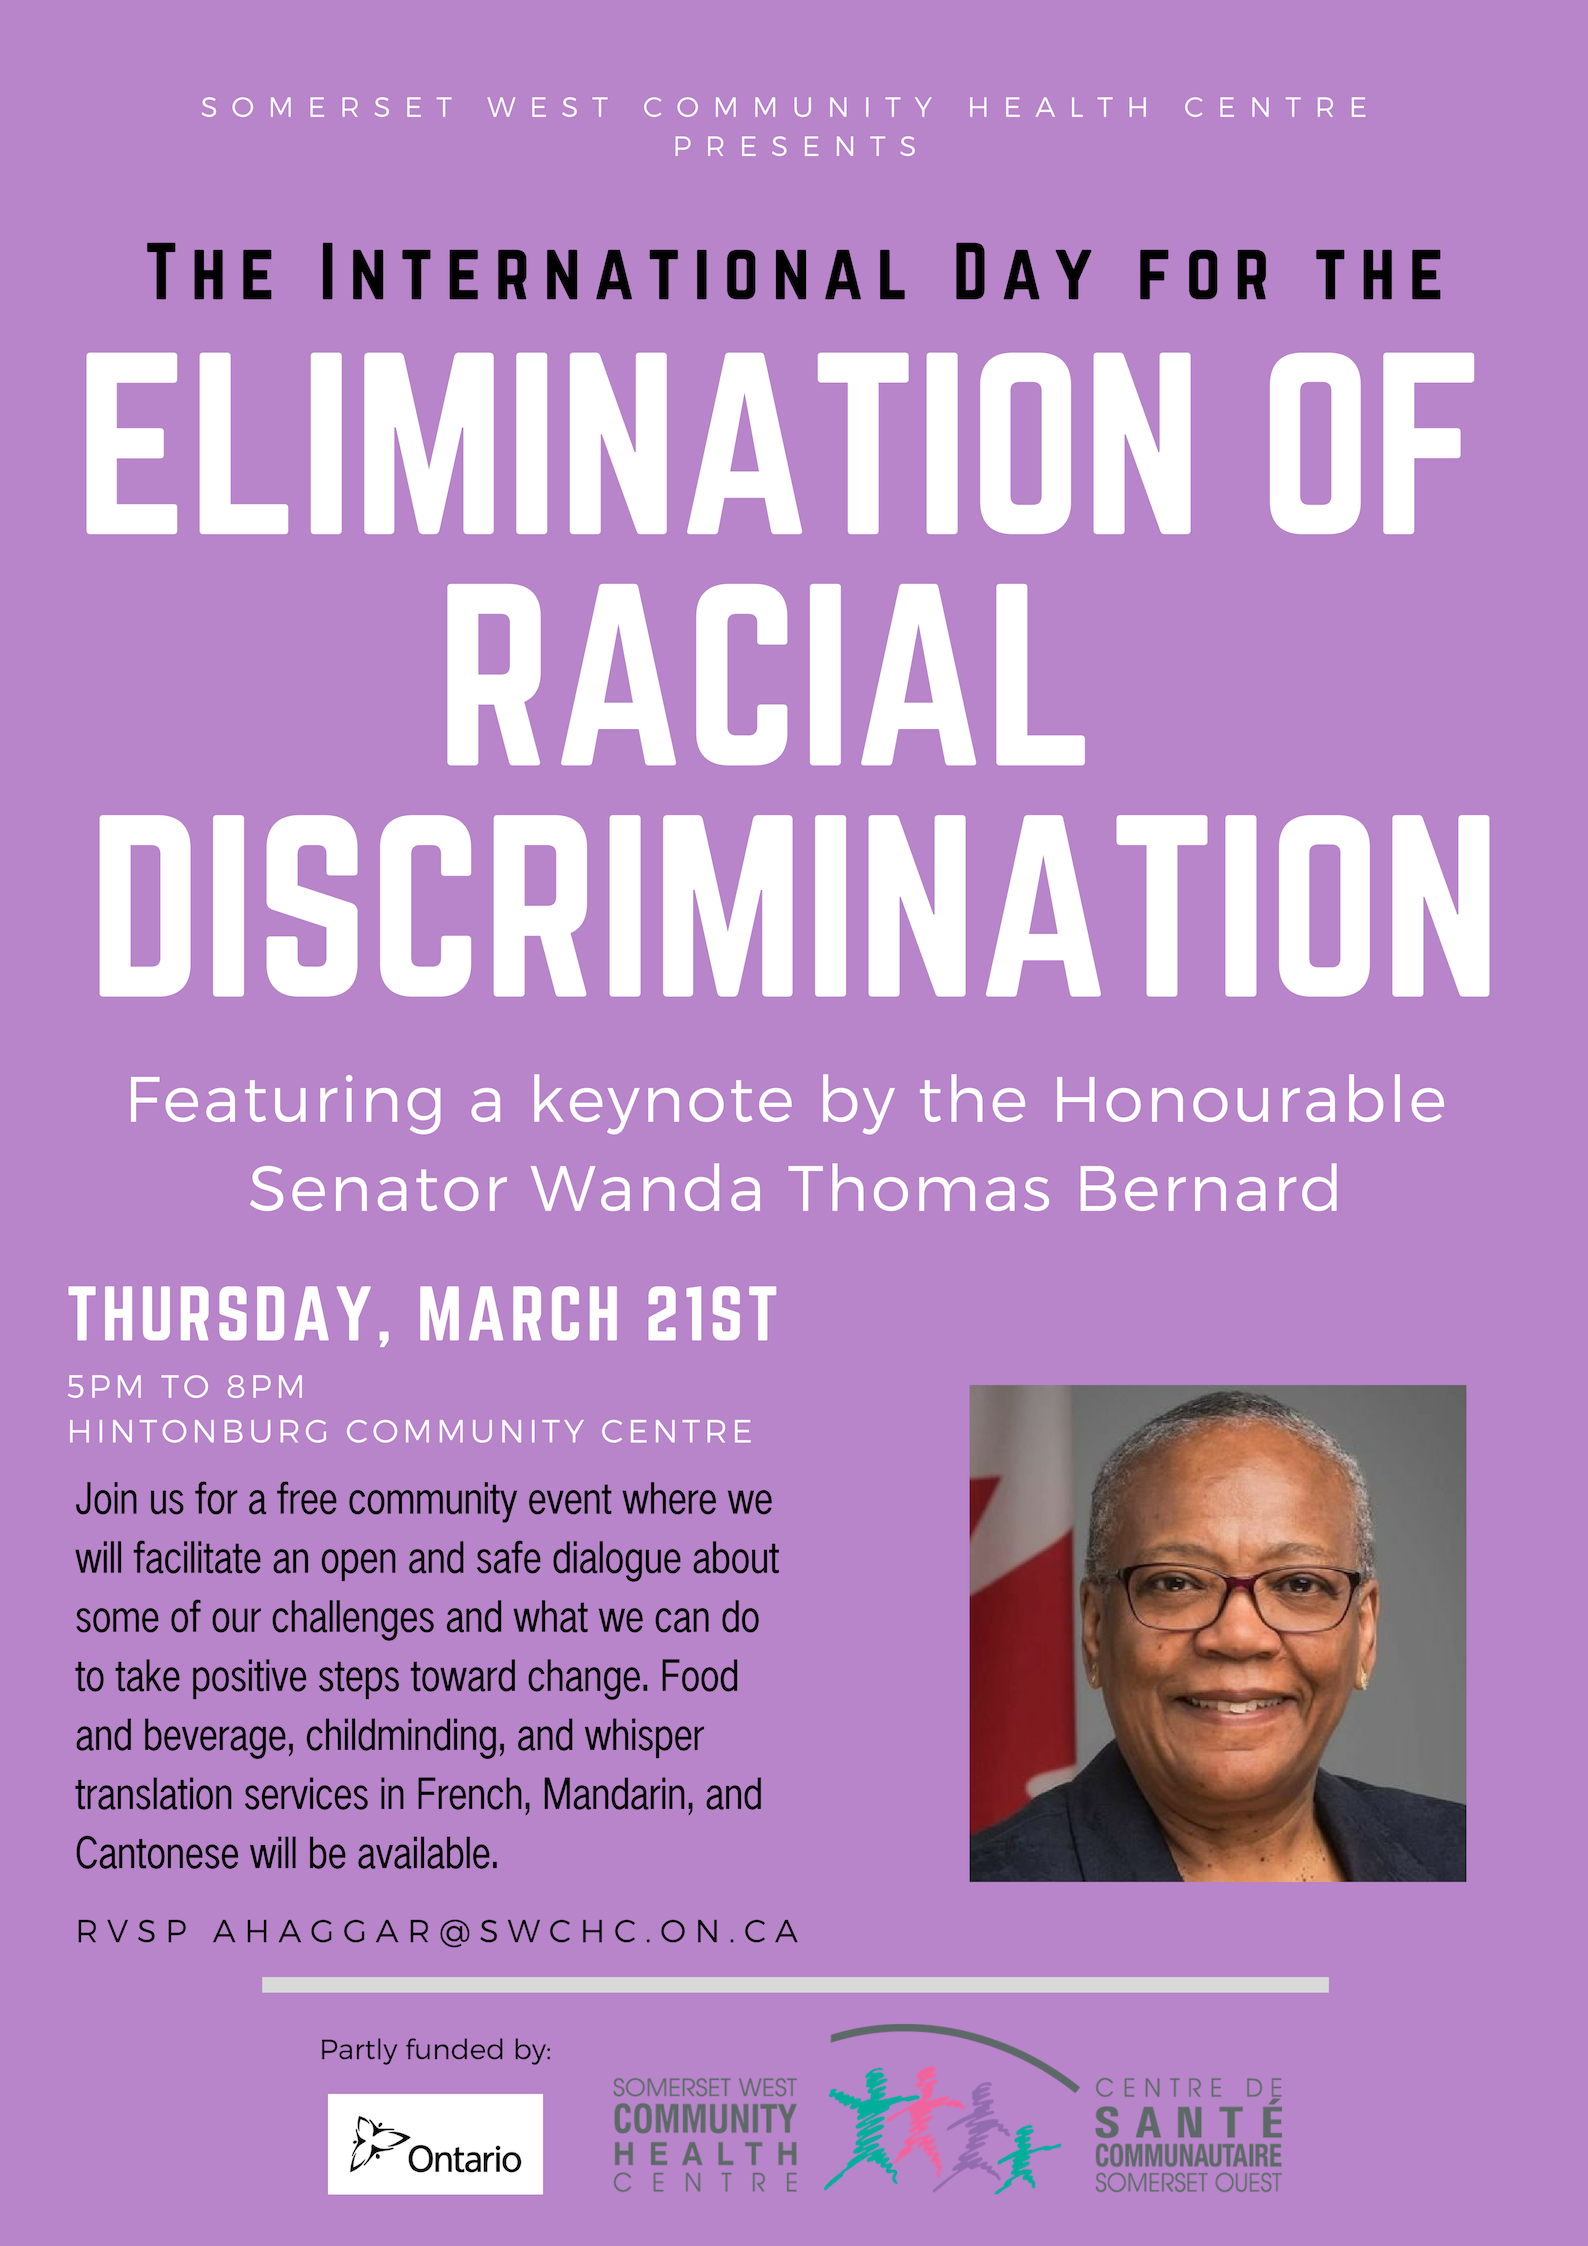 SWCHC Invitation PNG International Day for the Elimination of Racial Discrimination March 21 .png